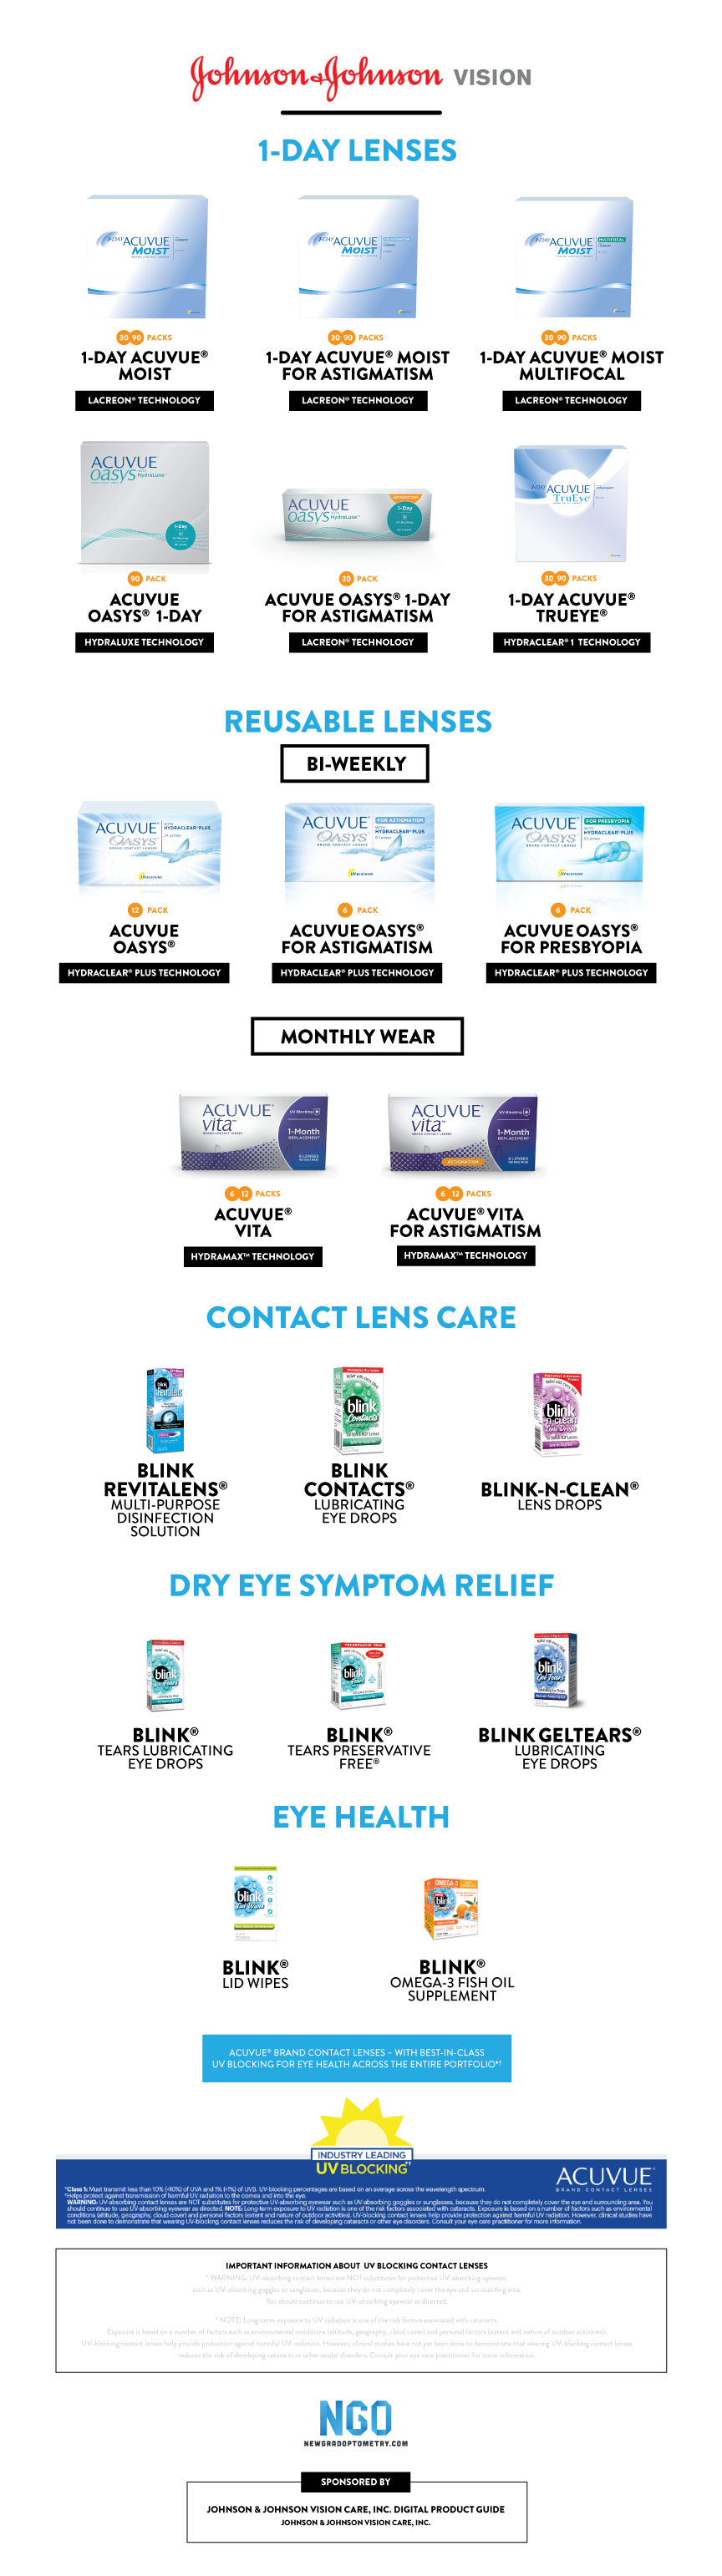 contact lens options and consumer eye health